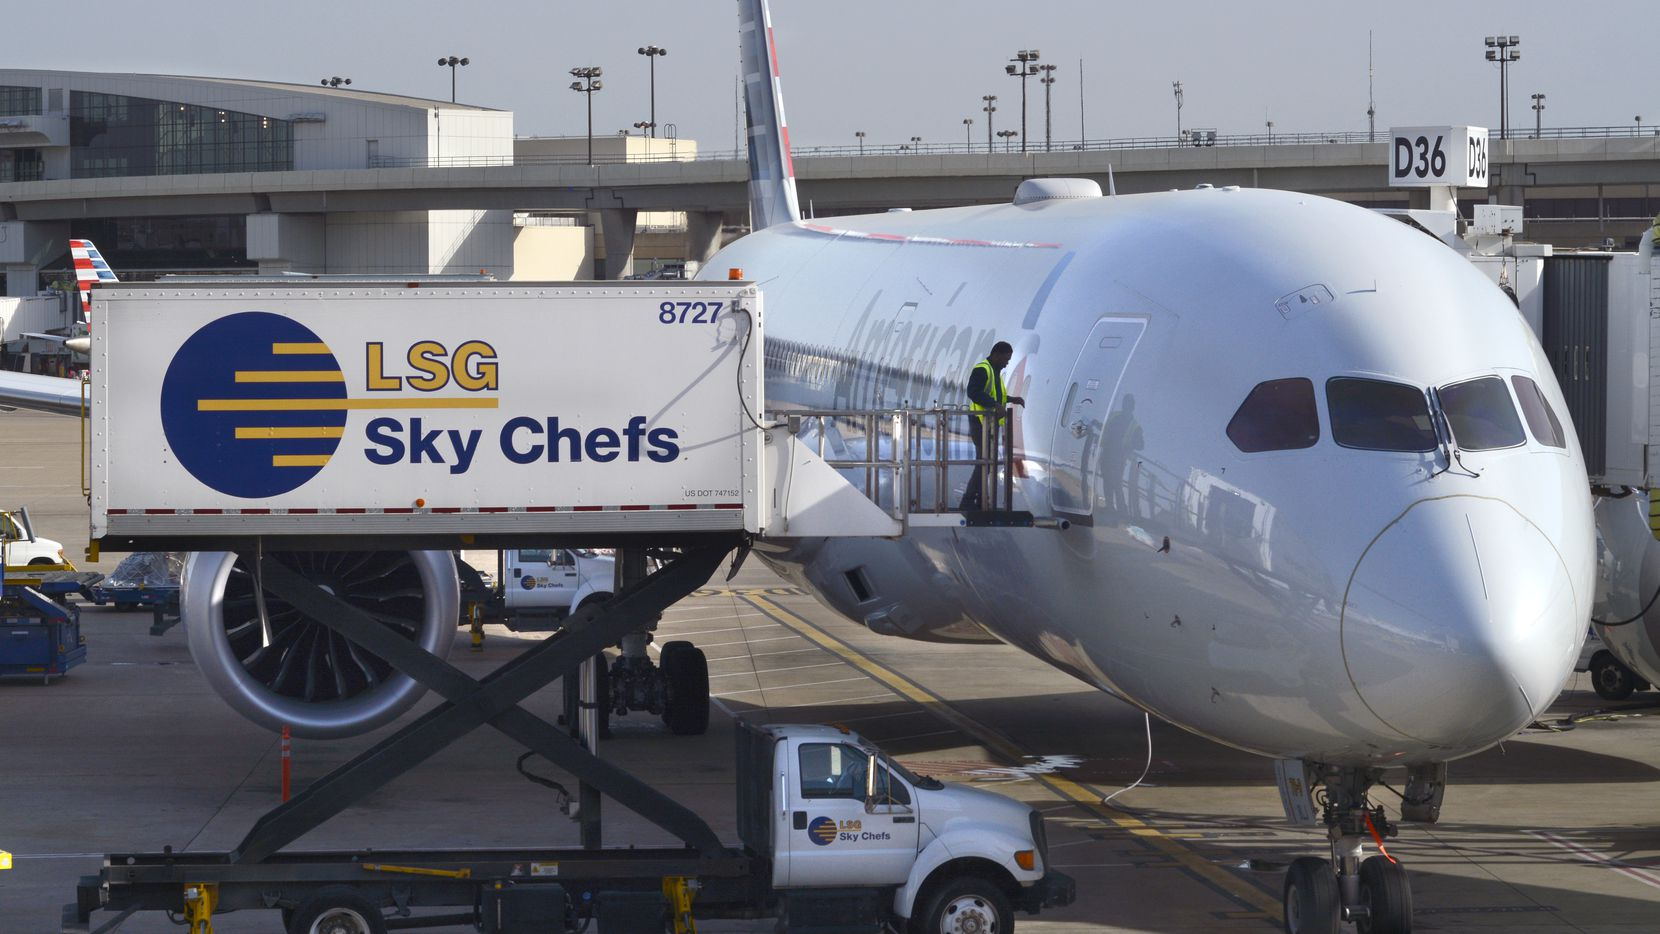 An employee of LSG Sky Chefs prepares to load food and drinks onto an American Airlines commercial jet being serviced at a gate at DFW International Airport. LSG Sky Chefs is the brand name of LSG Lufthansa Service Holding AG, the world's largest provider of airline catering and in-flight services. It is a subsidiary of Deutsche Lufthansa AG. (Photo by Robert Alexander/Getty Images)